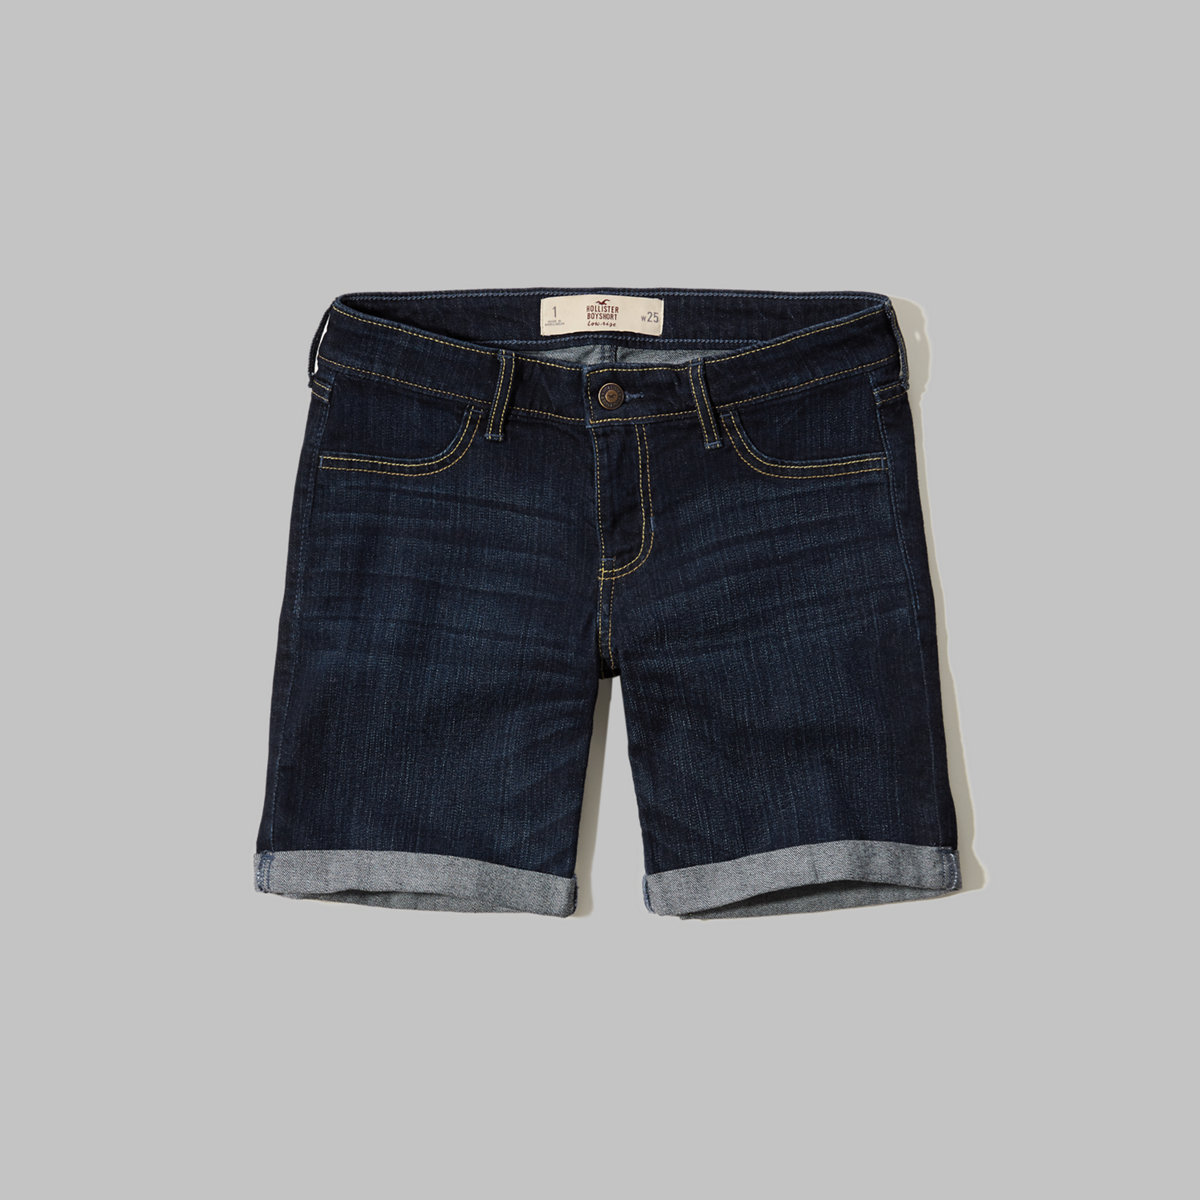 Low Rise Denim Boyshorts